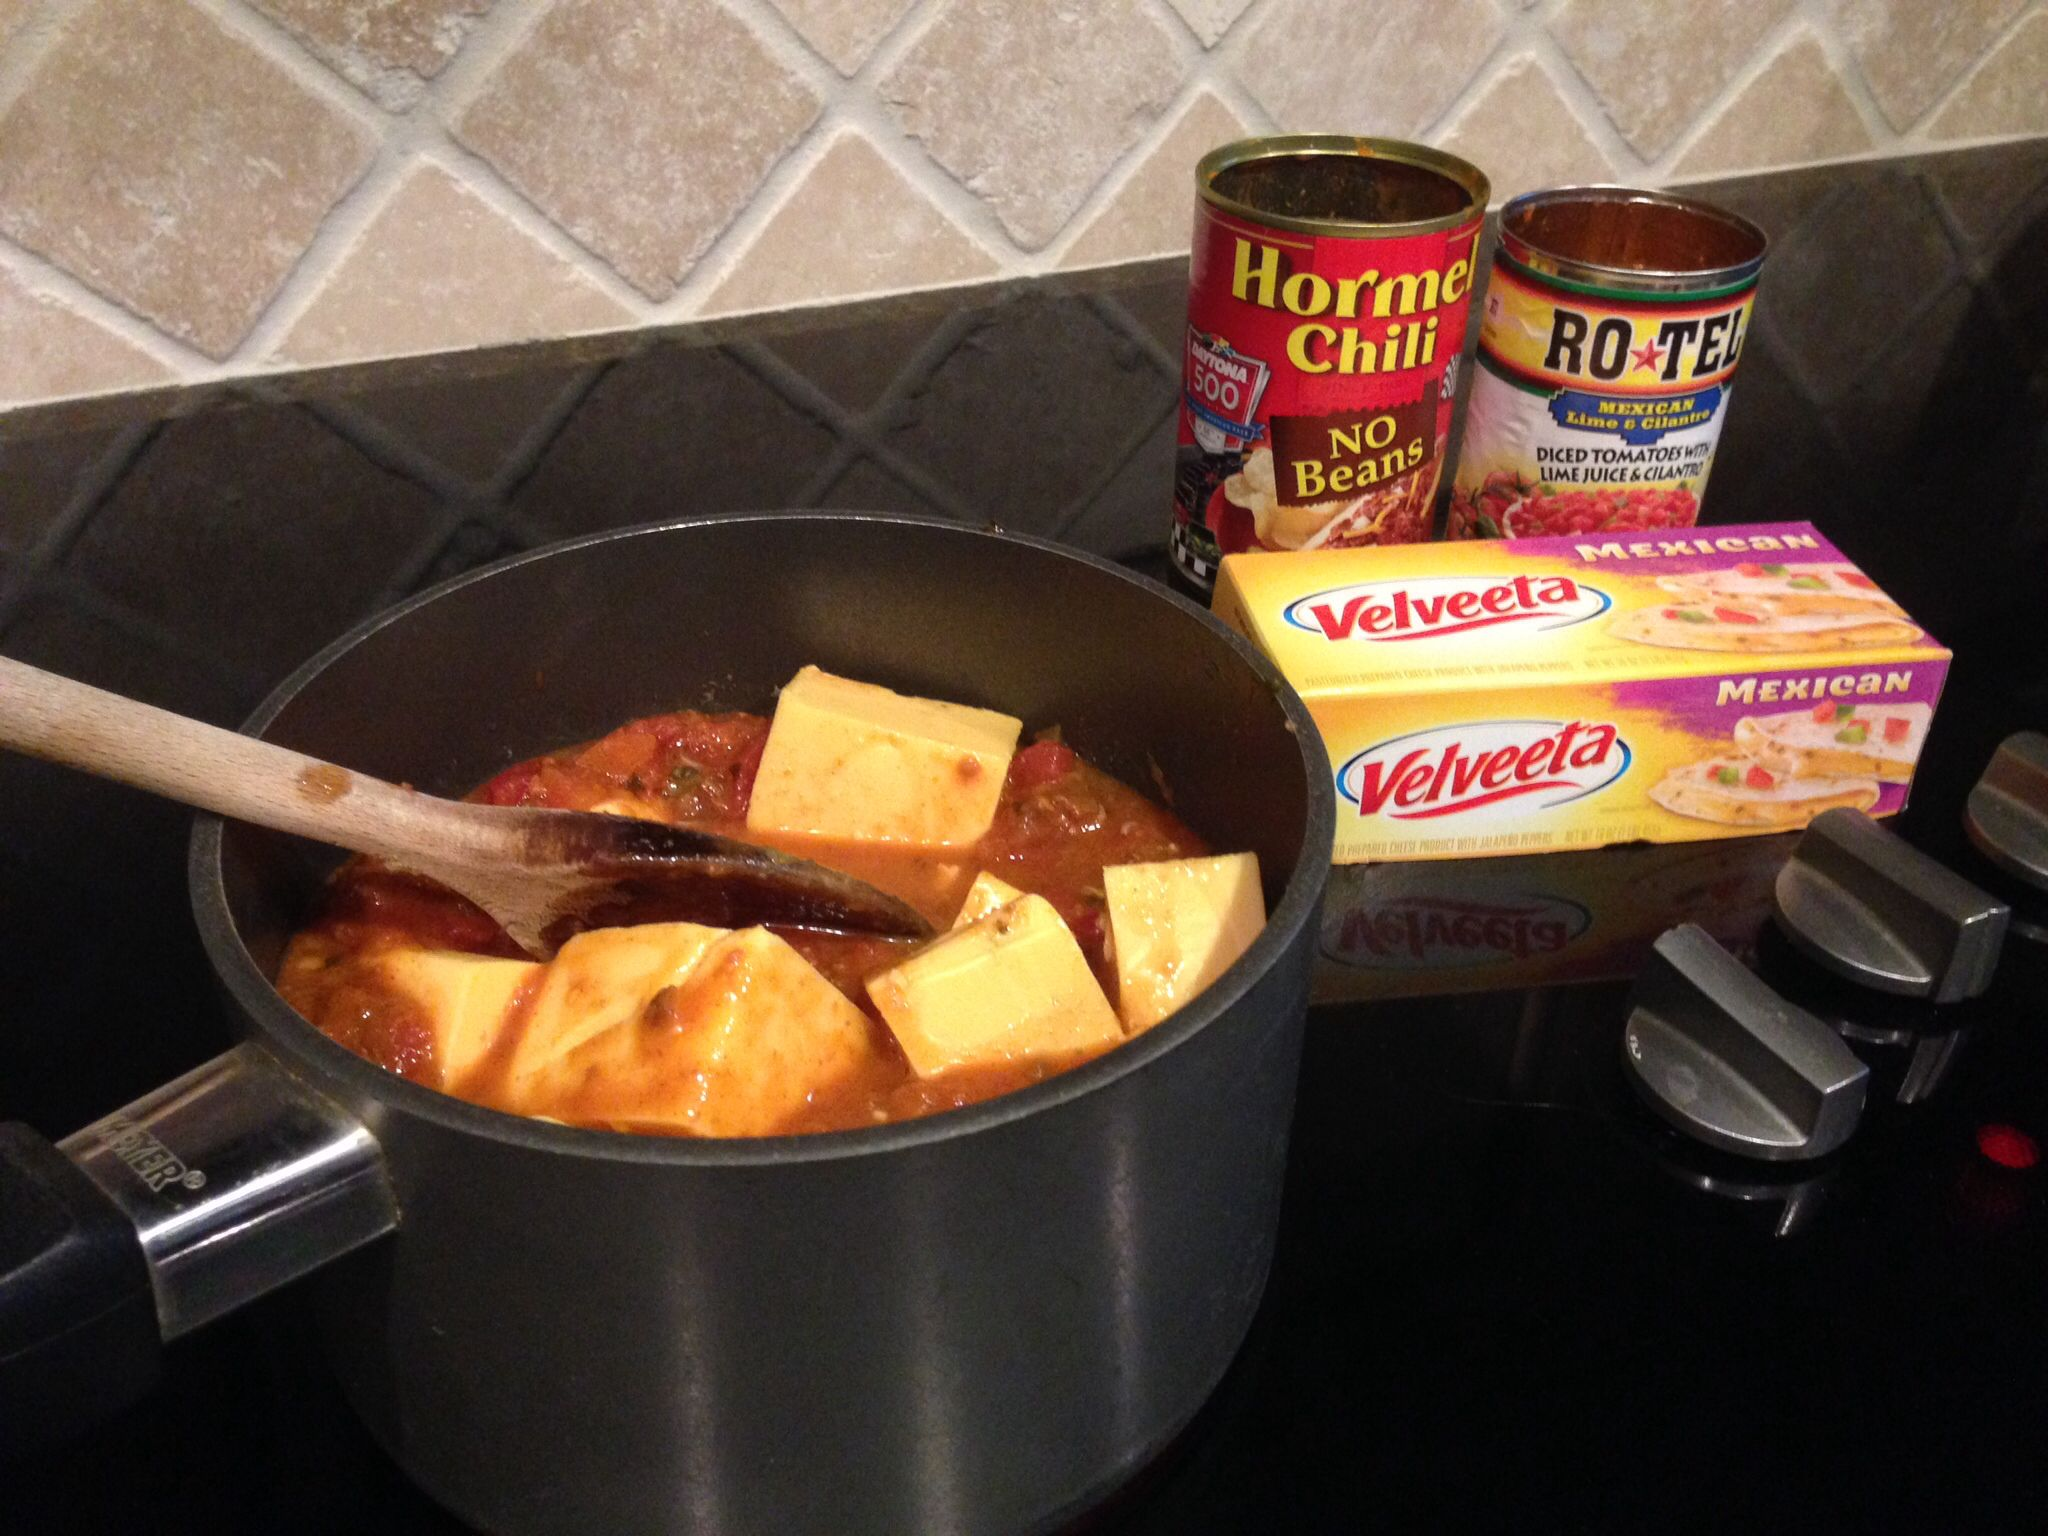 Chili Cheese Dip One Can Hormel Chili With No Beans One Can Rotel Mexican Style And 16 Ounce Chili Cheese Dips Hormel Chili Cheese Dip Cheese Dip Crock Pot